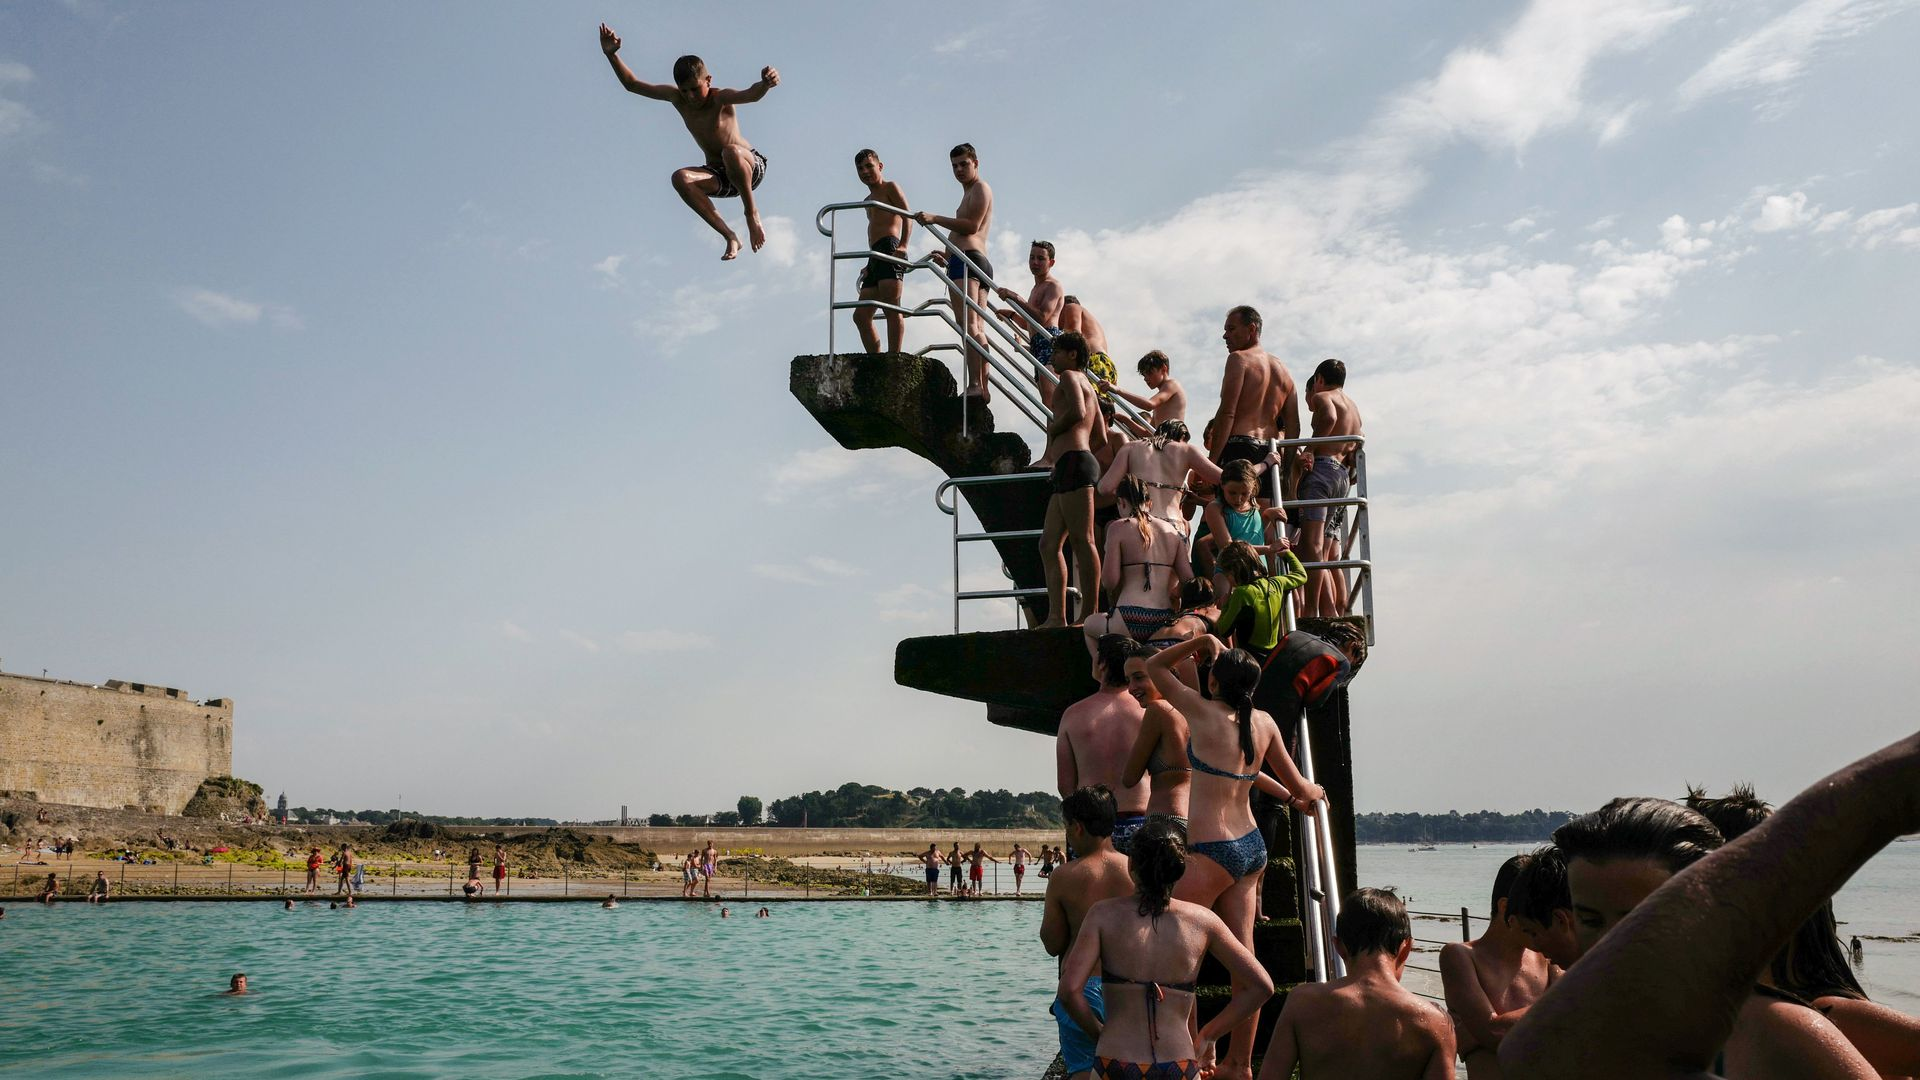 People queue to dive into the landmark sea pool of Saint-Malo, Brittany.